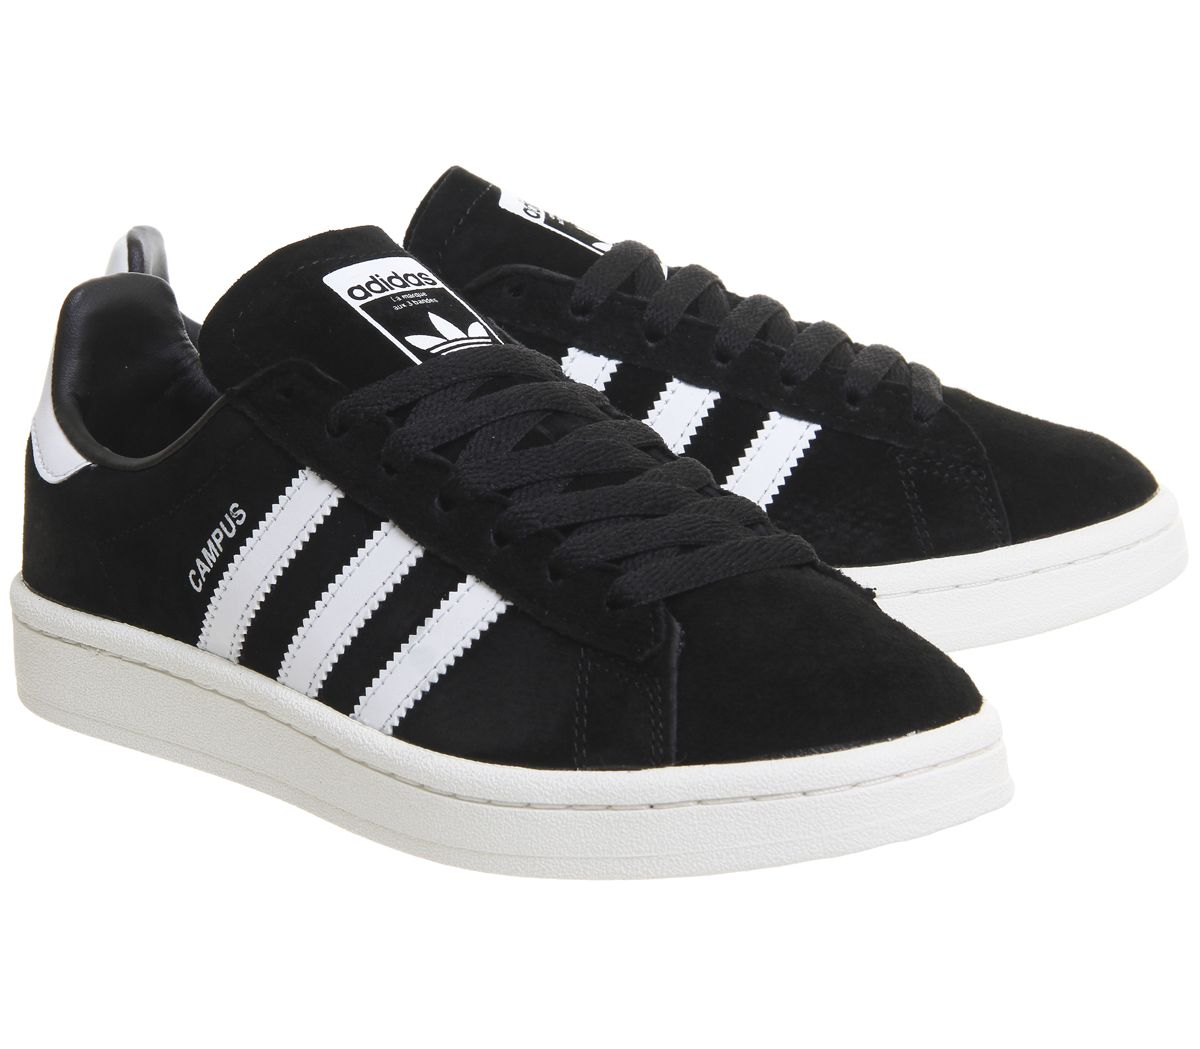 buy online d75fe 95e19 Sentinel Mens Adidas Campus Black White Trainers Shoes